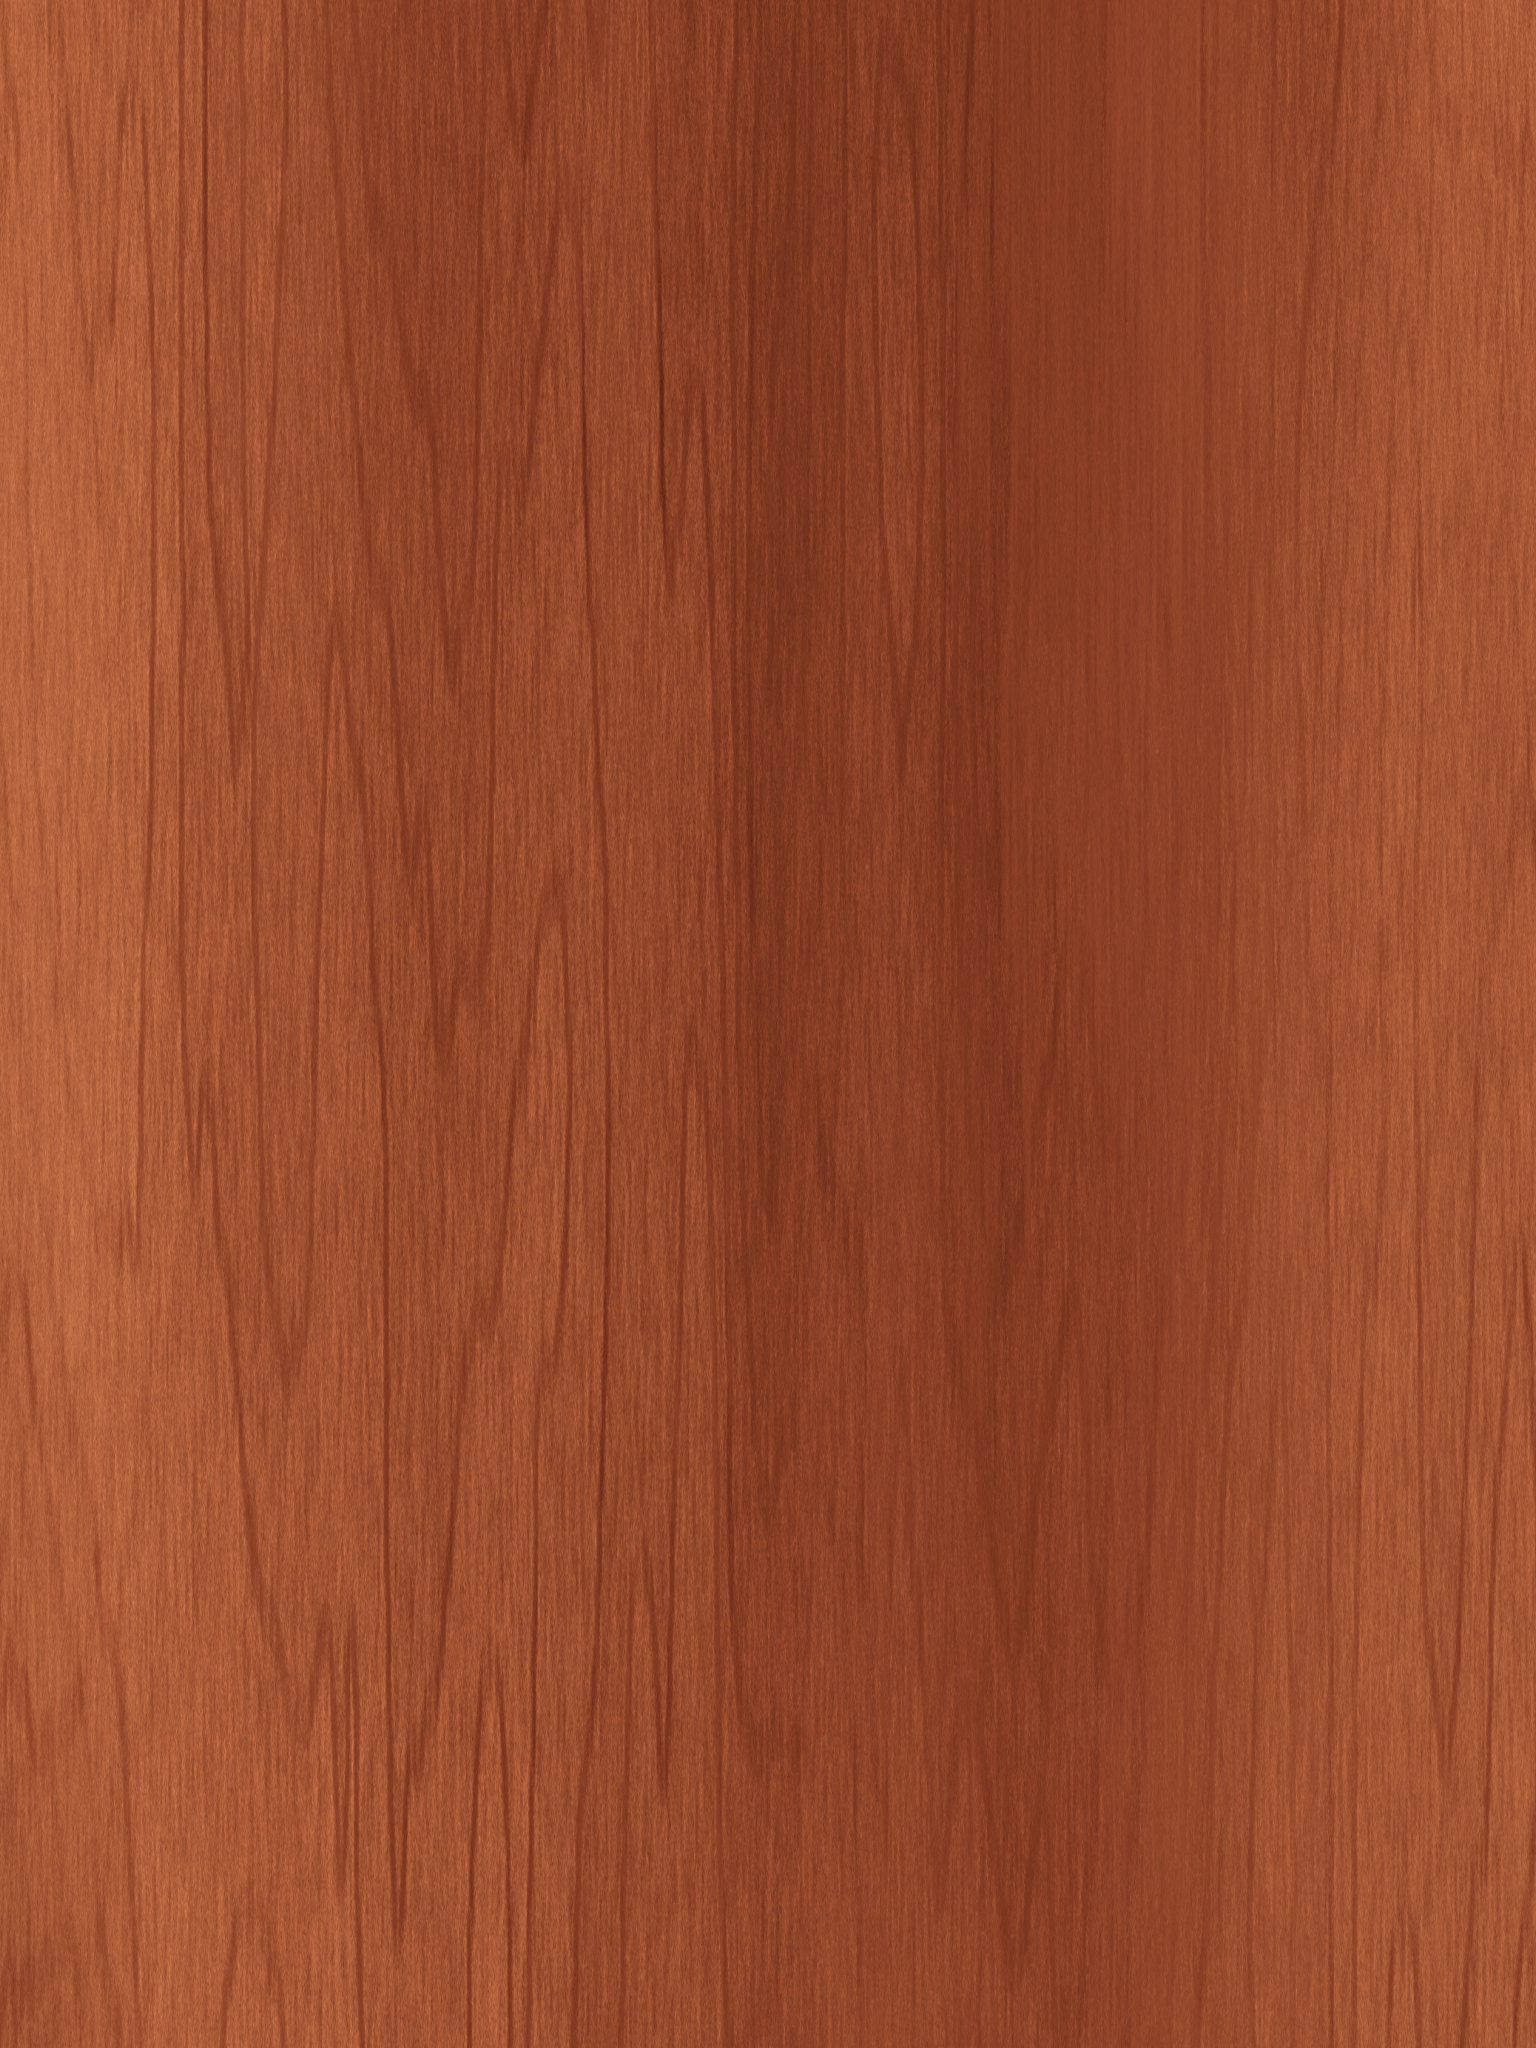 Free Download Cherry Wood Texture Wooden Panels Texture